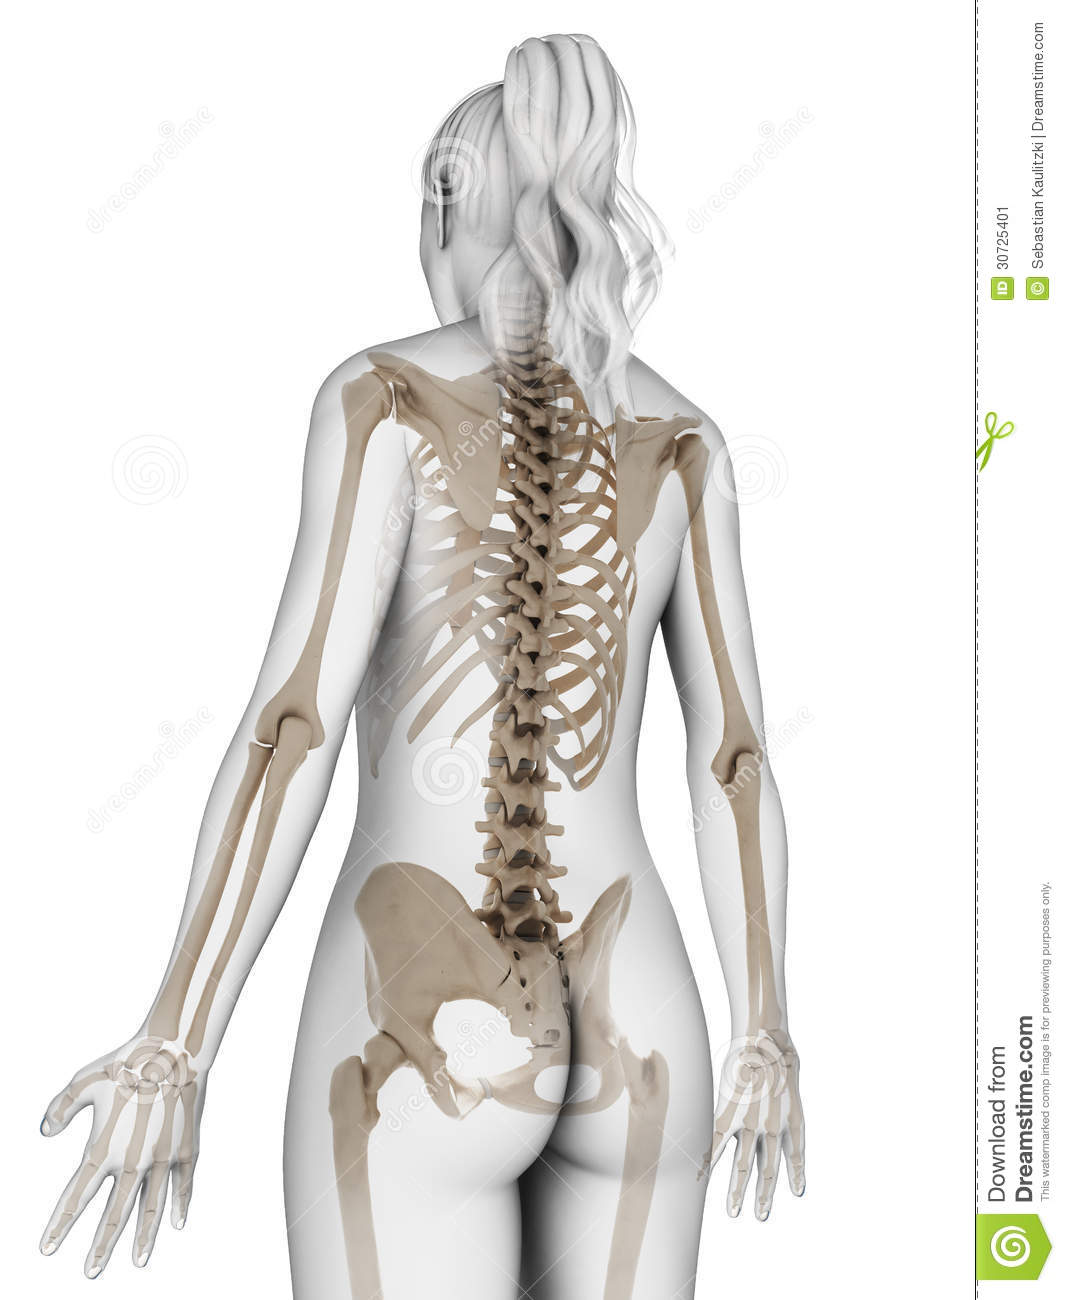 3d rendered illustration of the female skeleton.